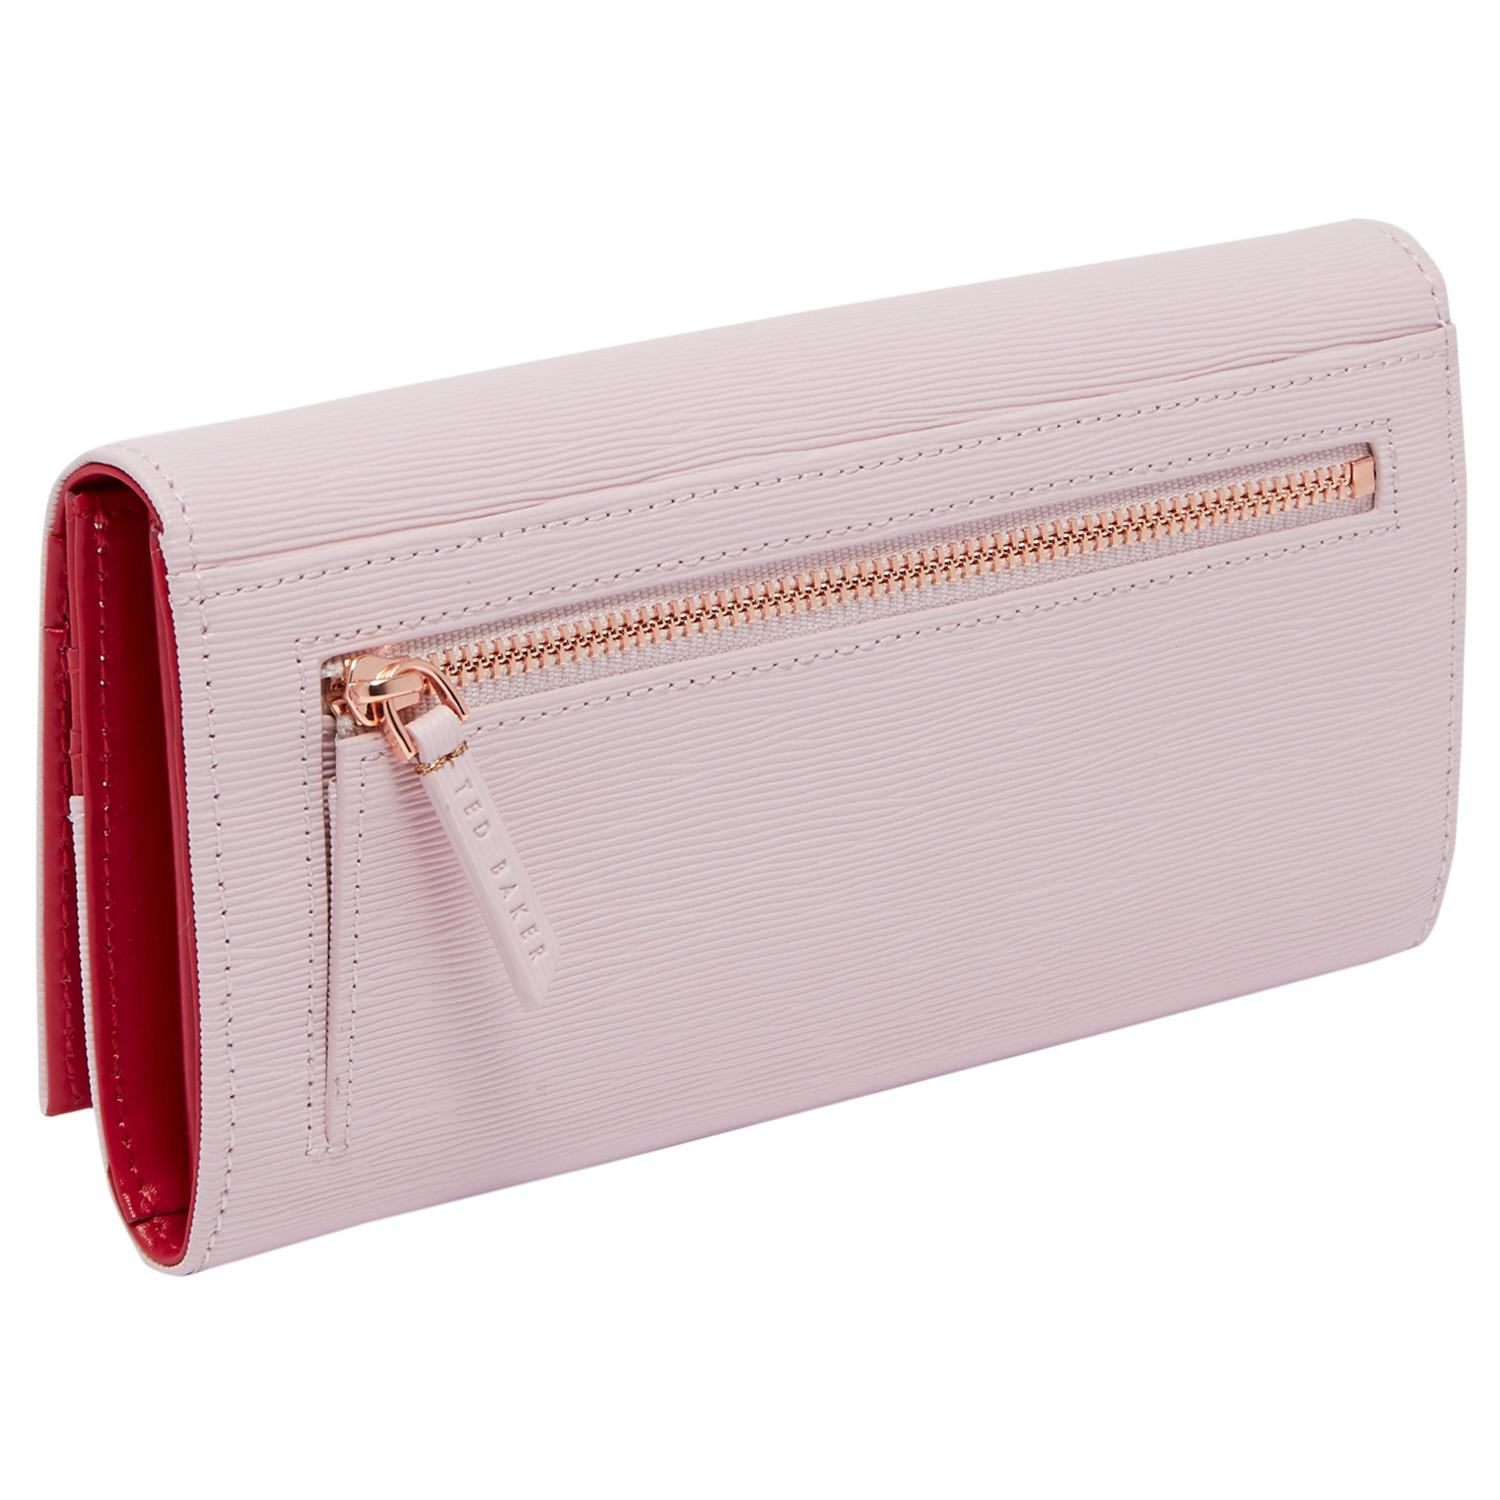 8f0ca90574b4be Ted Baker Pansie Bow Leather Matinee Purse in Pink - Lyst